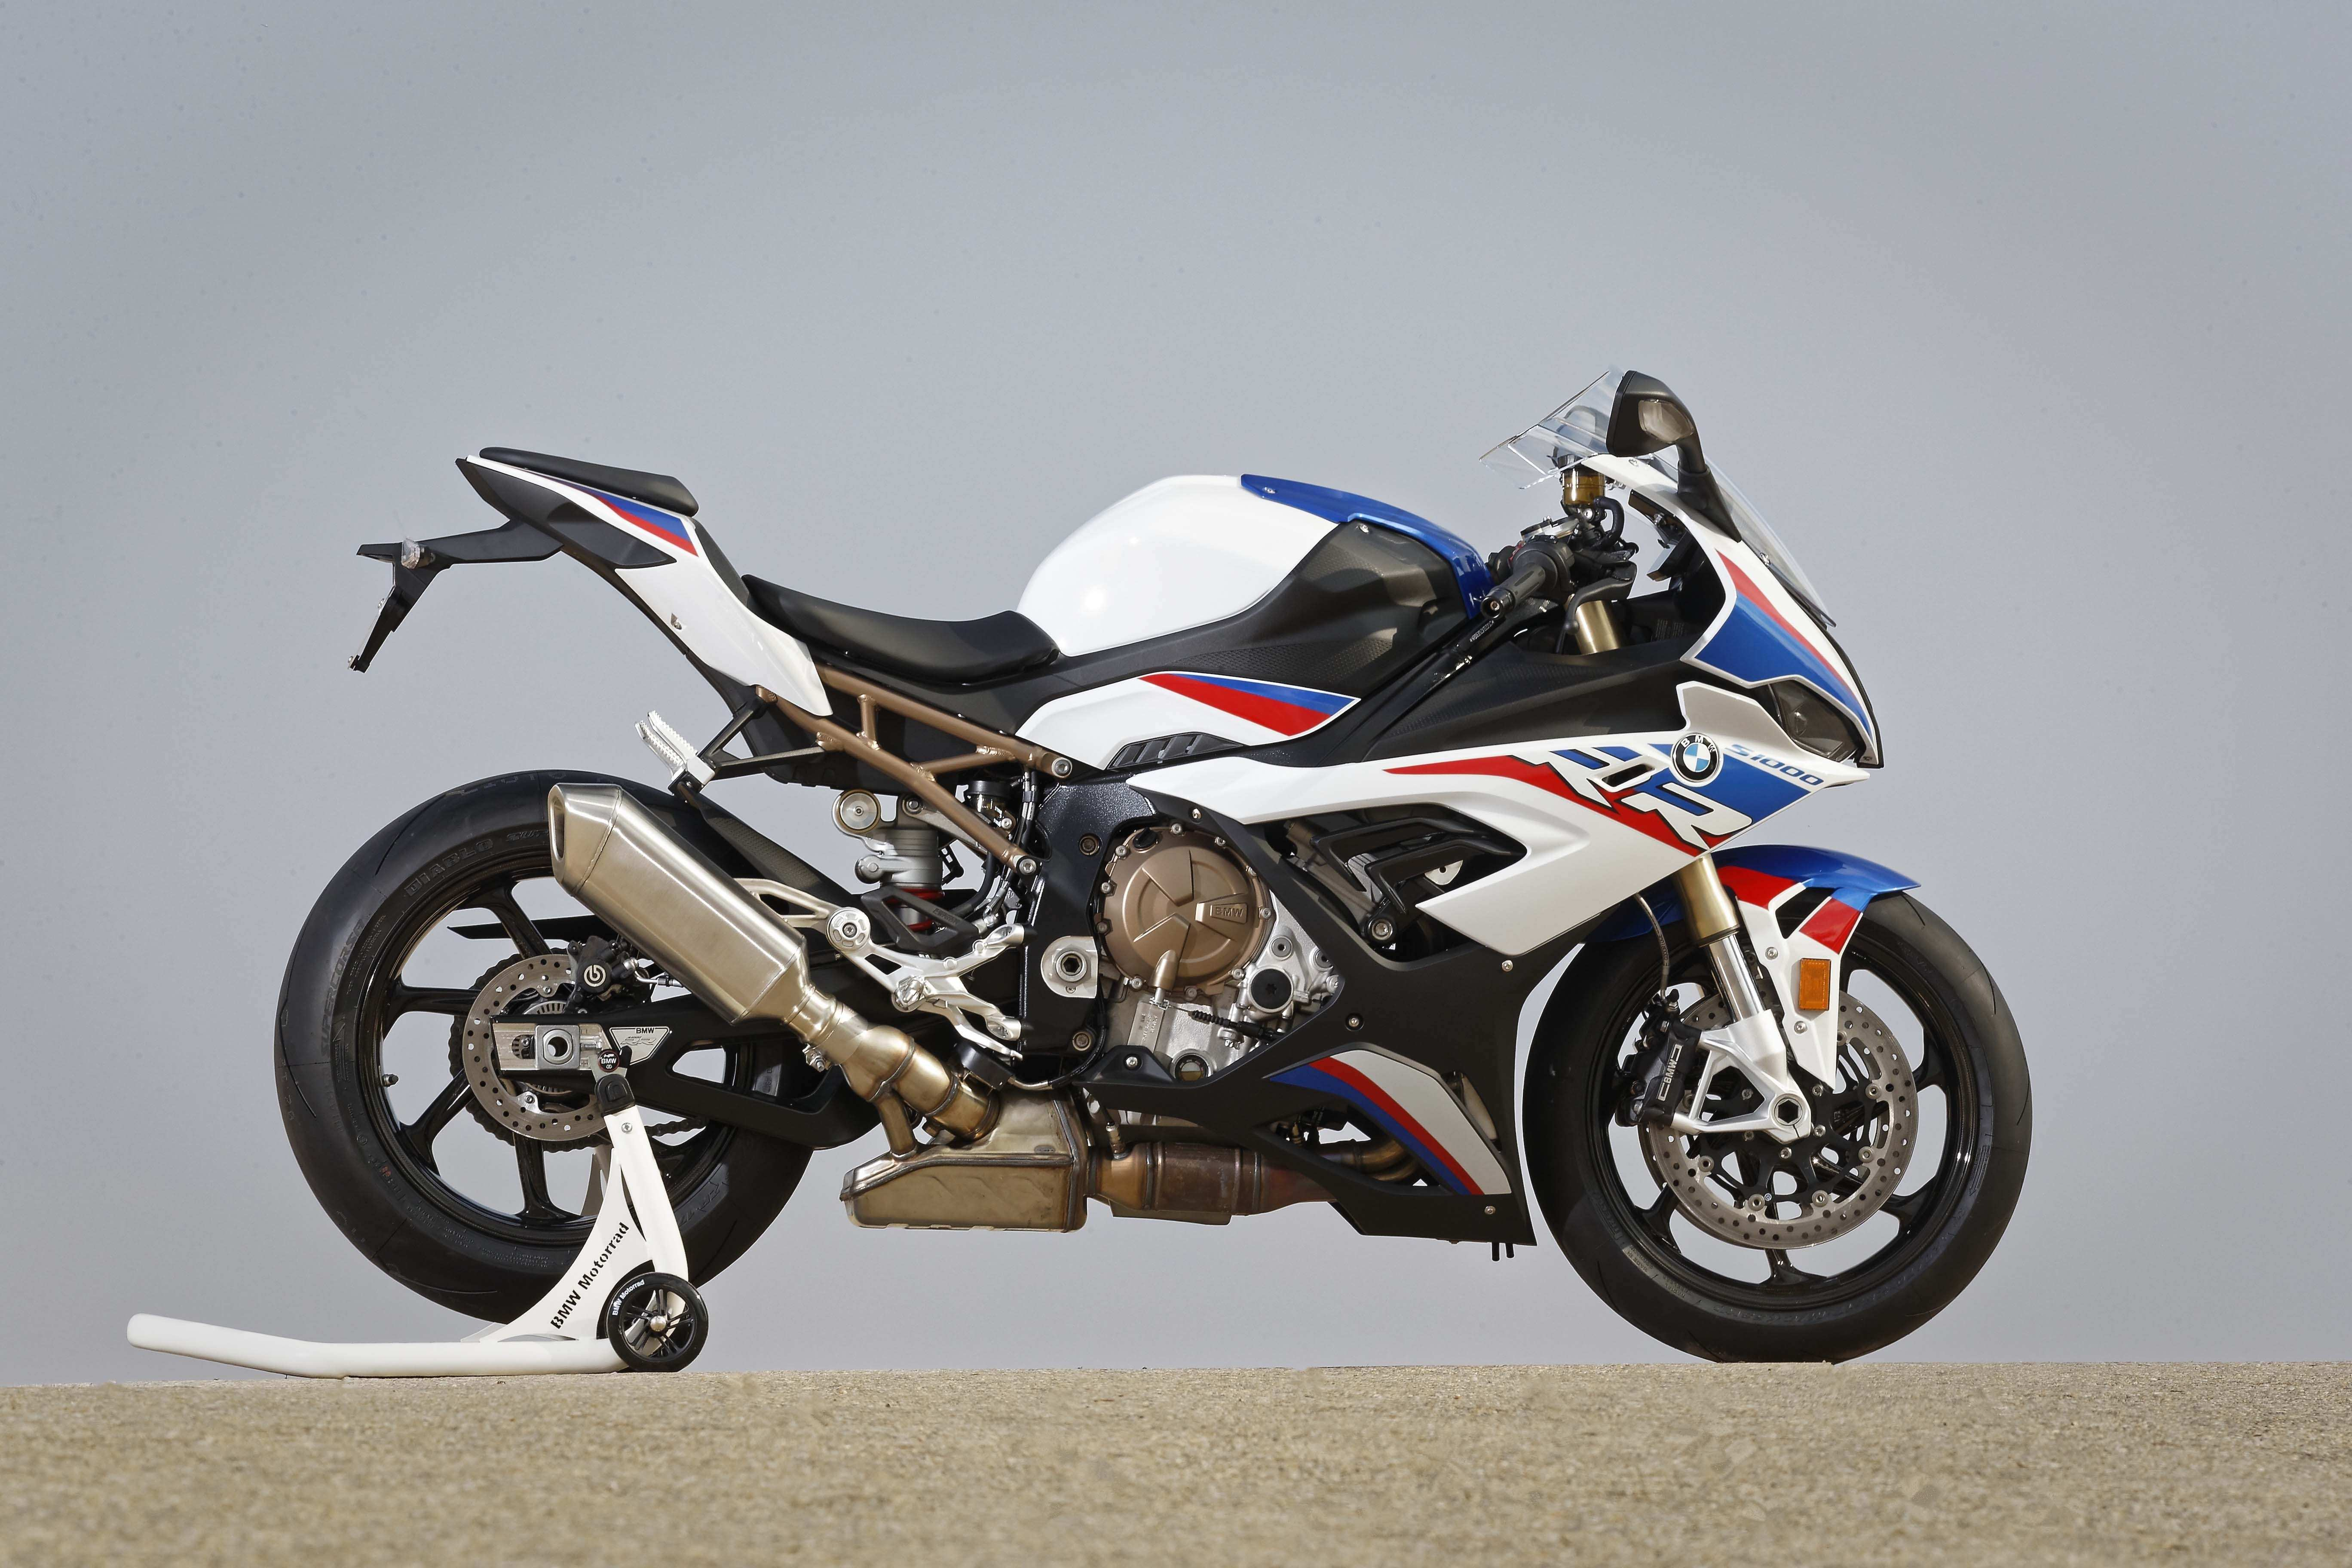 14 Great Bmw Bike 2020 Pricing with Bmw Bike 2020